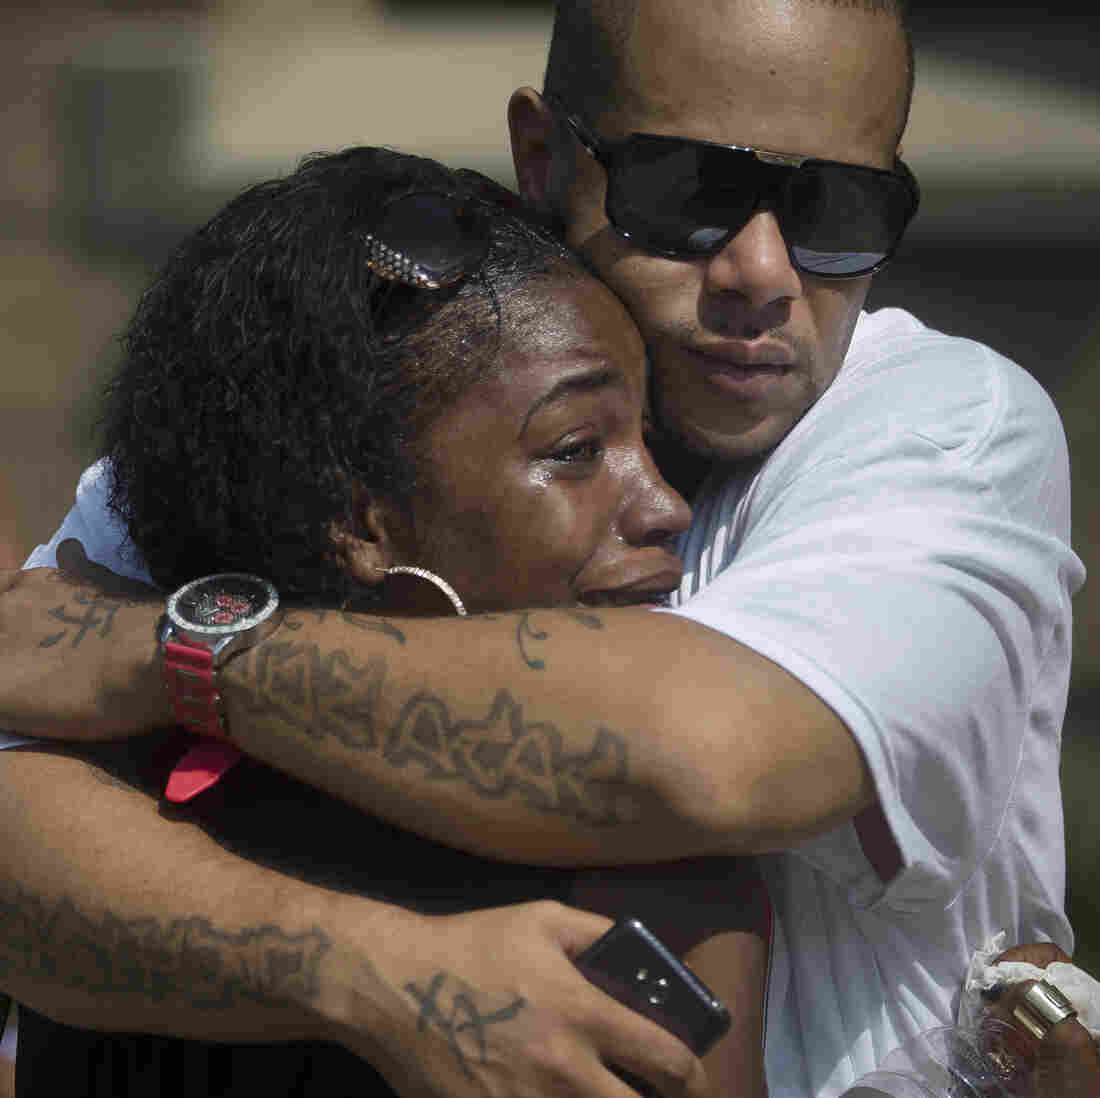 Mourners Shanicca Soloman cries in the embrace of friend Terrell Whitney outside funeral services for Samuel DuBose at the Church of the Living God in the Avondale neighborhood of Cincinnati on Tuesday.